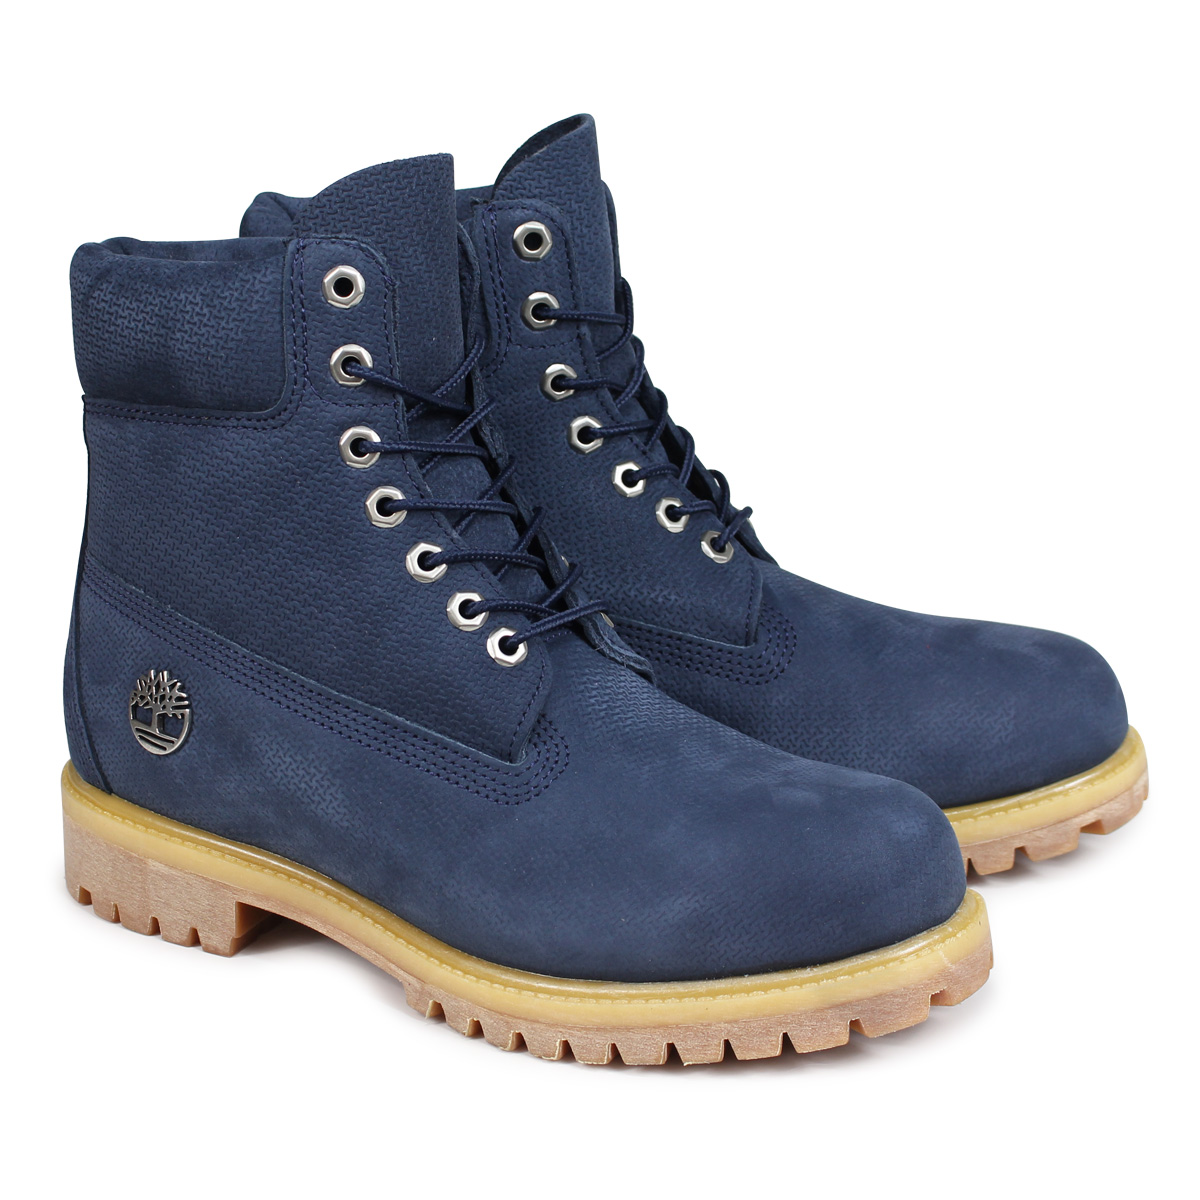 53a5f1b30d2 6 inches of Timberland 6INCH PREMIUM BOOT Timberland boots men A1U89 W Wise  premium black